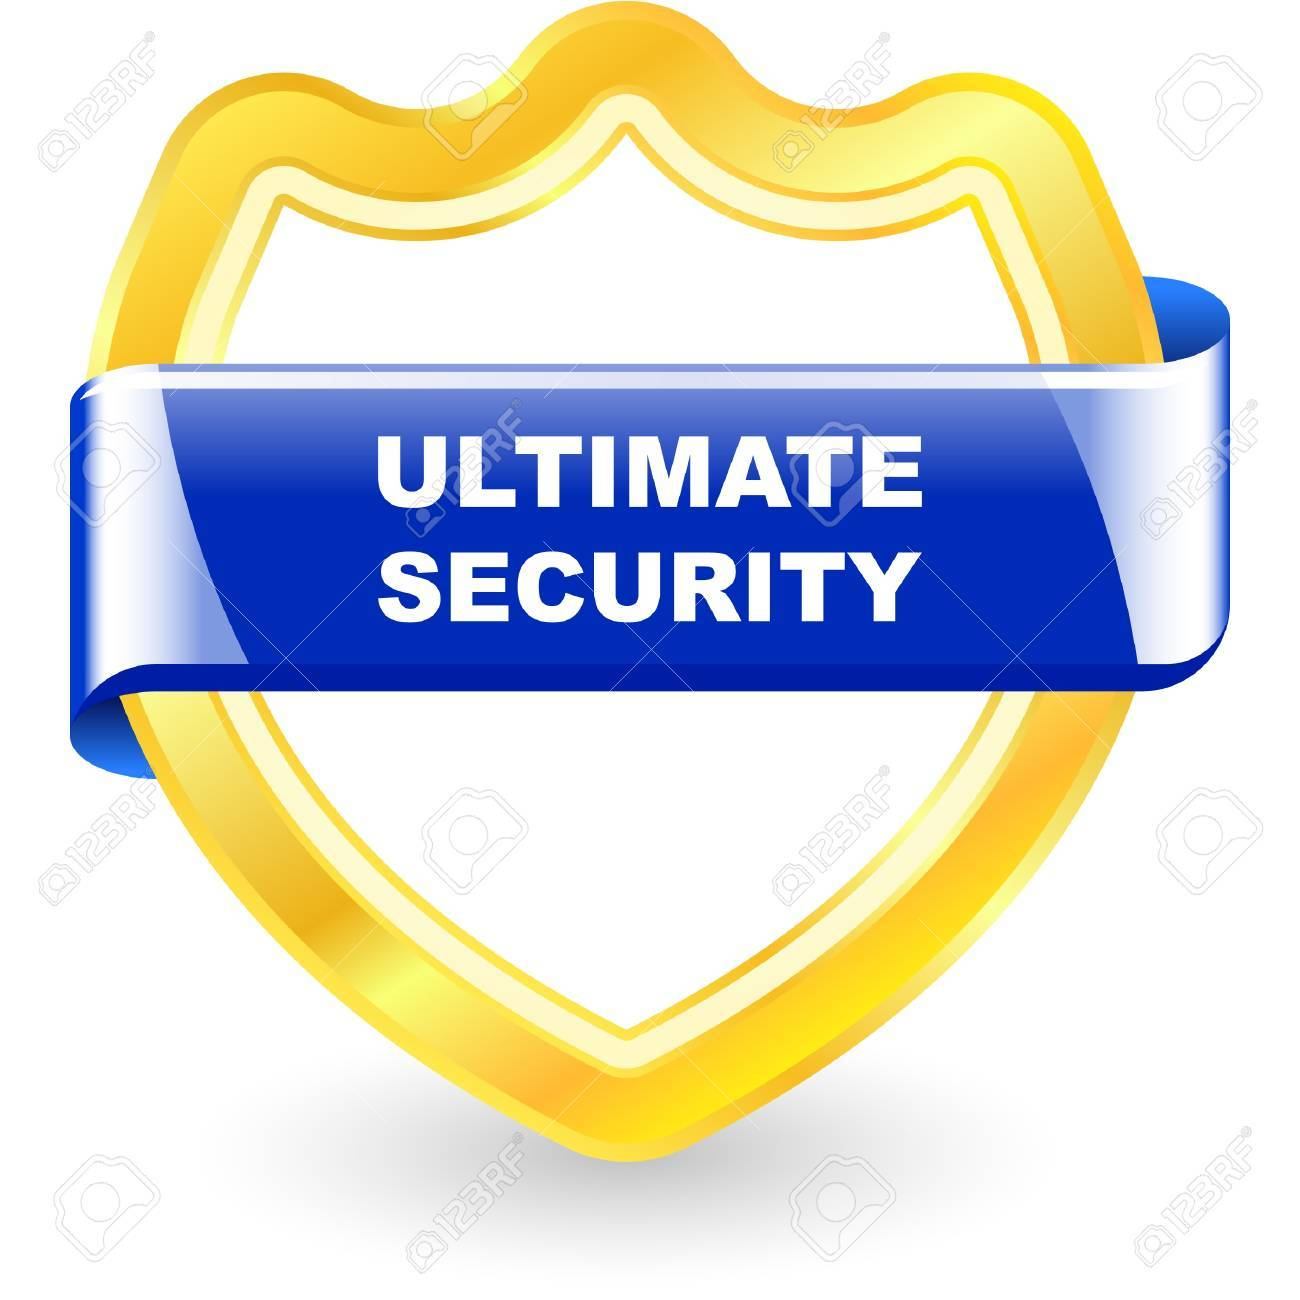 Ultimate security illustration. Stock Vector - 9901845